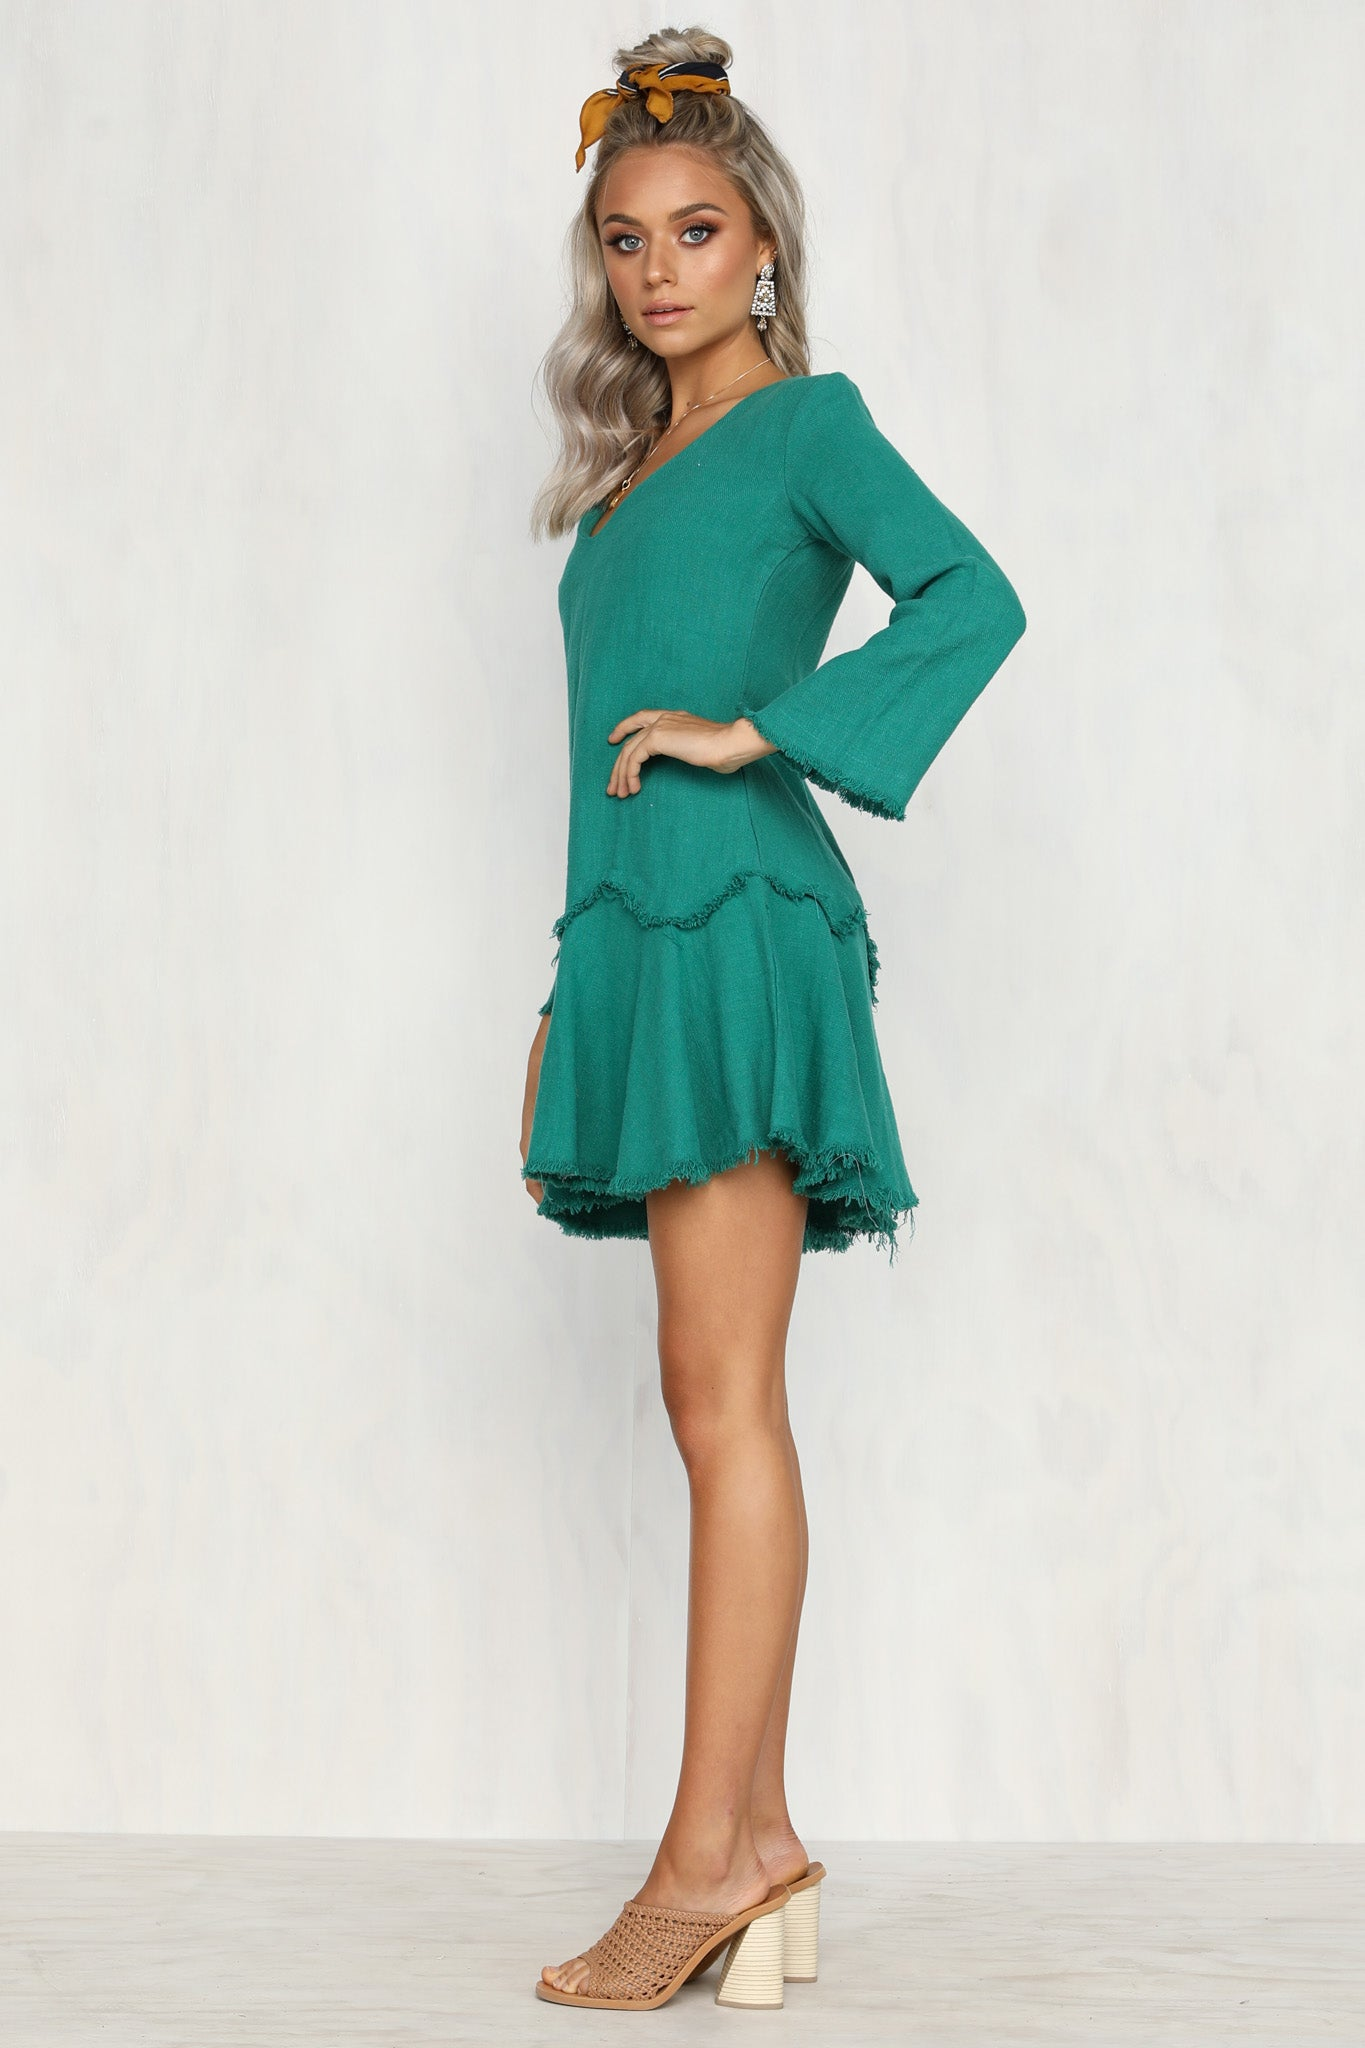 Chelsea Girl Dress (Emerald)